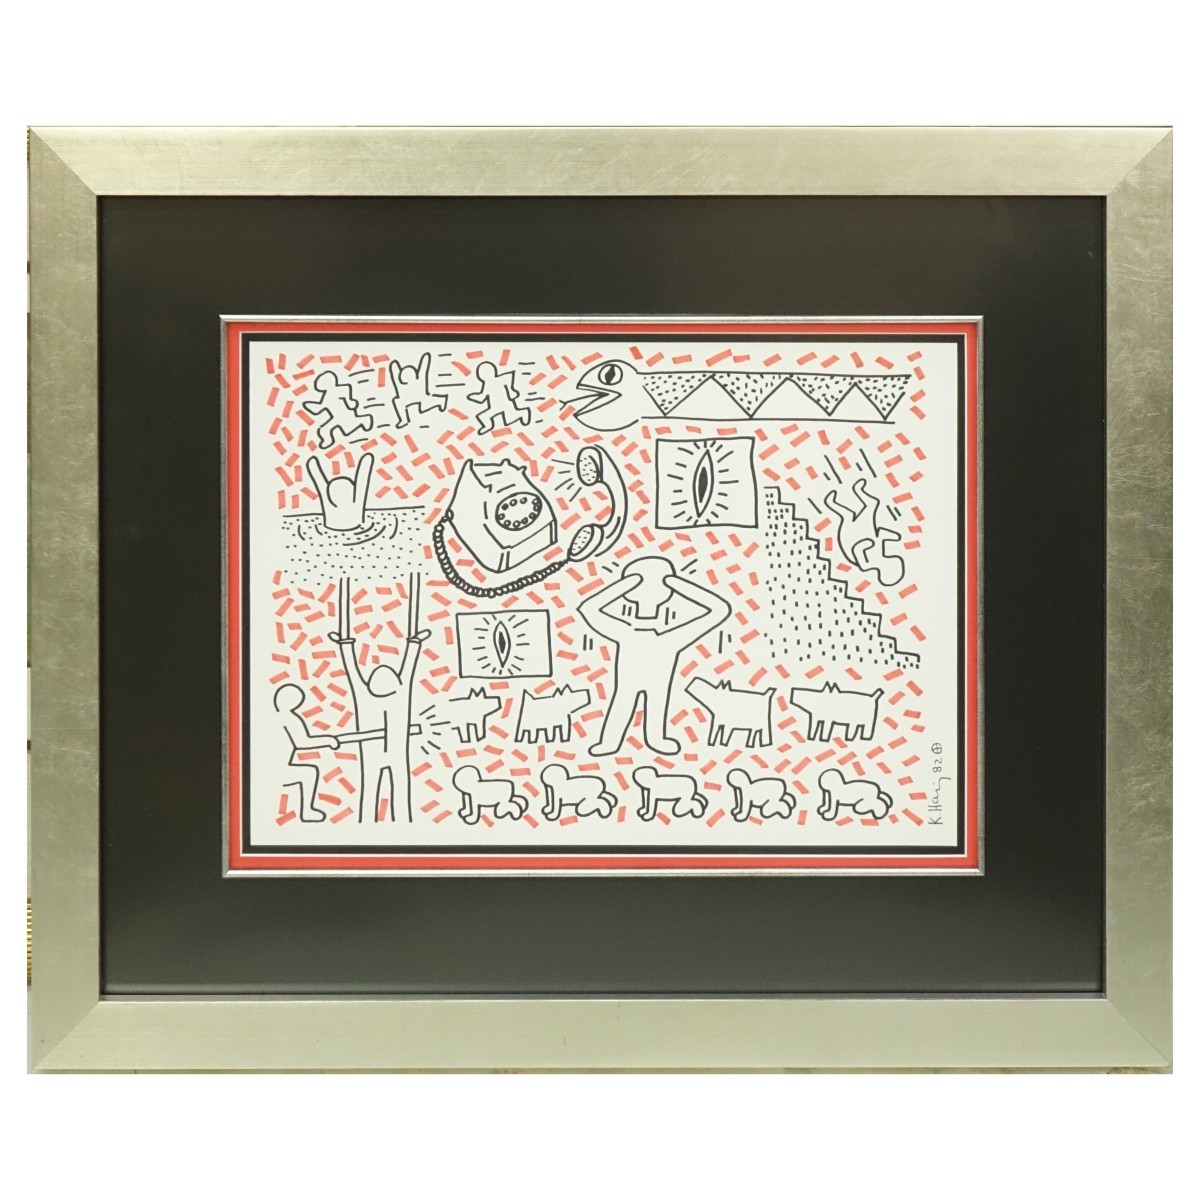 After: Keith Haring, American (1958-1990)